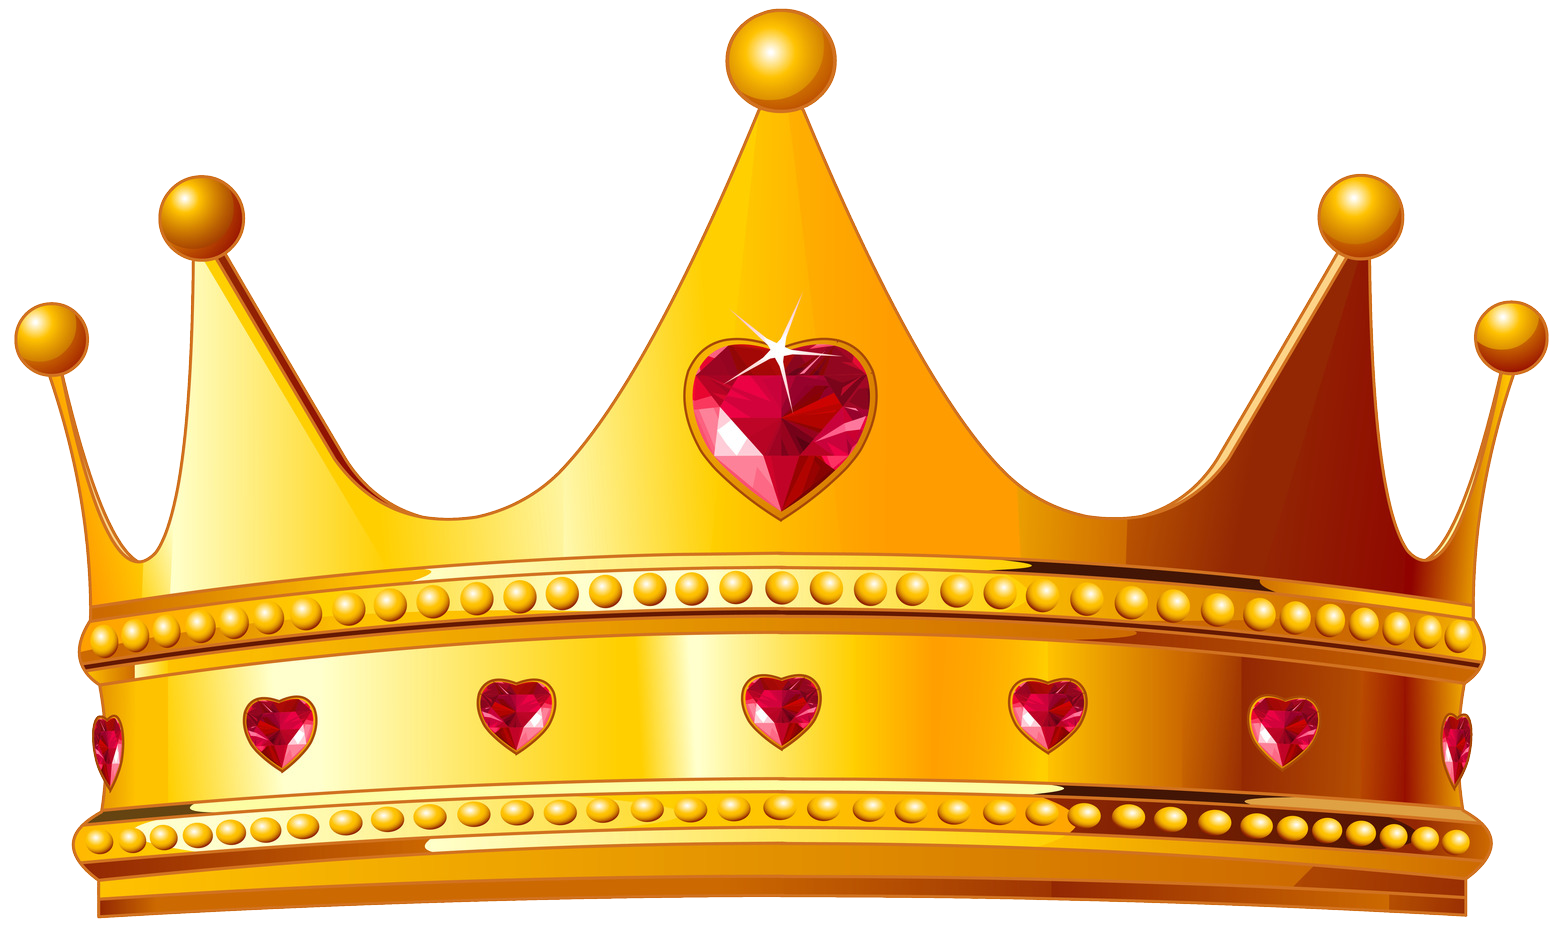 banner royalty free Full Hd Crown Png Transparent Background